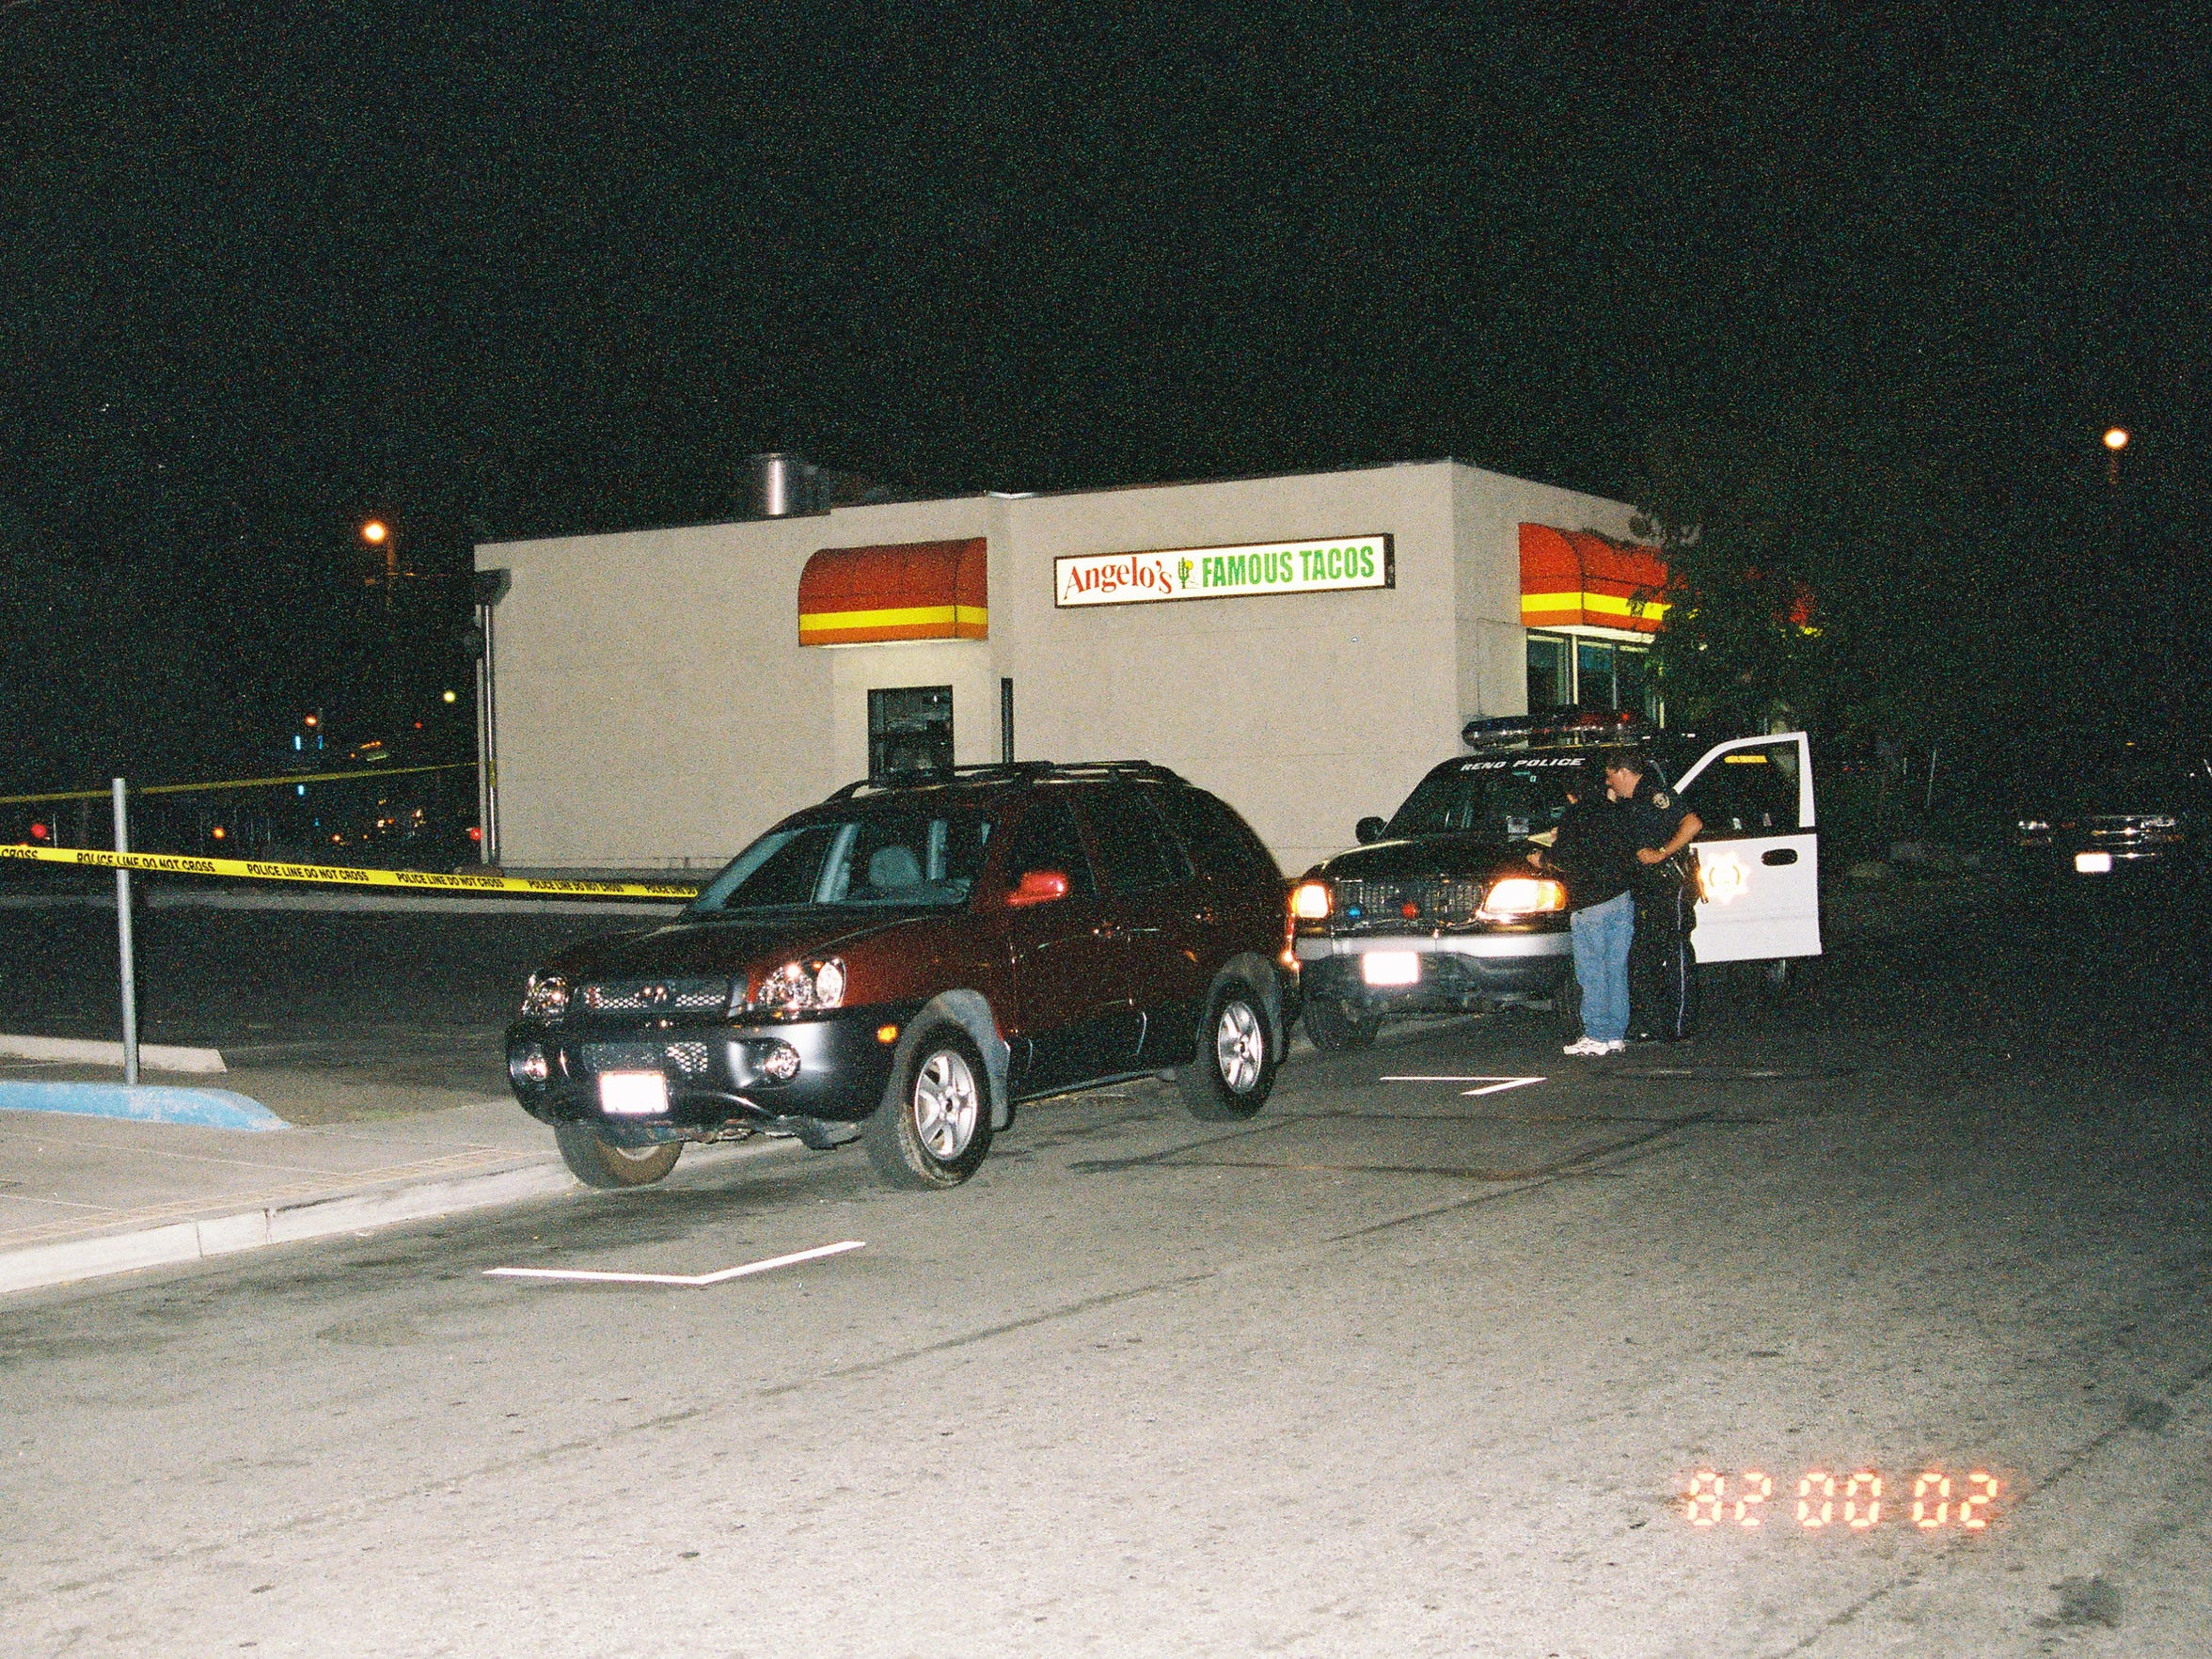 Melvin Gordon's SUV was found abandoned in the drive-thru of Angelo's Tacos on Prater Way in Sparks, Nev. on Sept. 25, 2002.